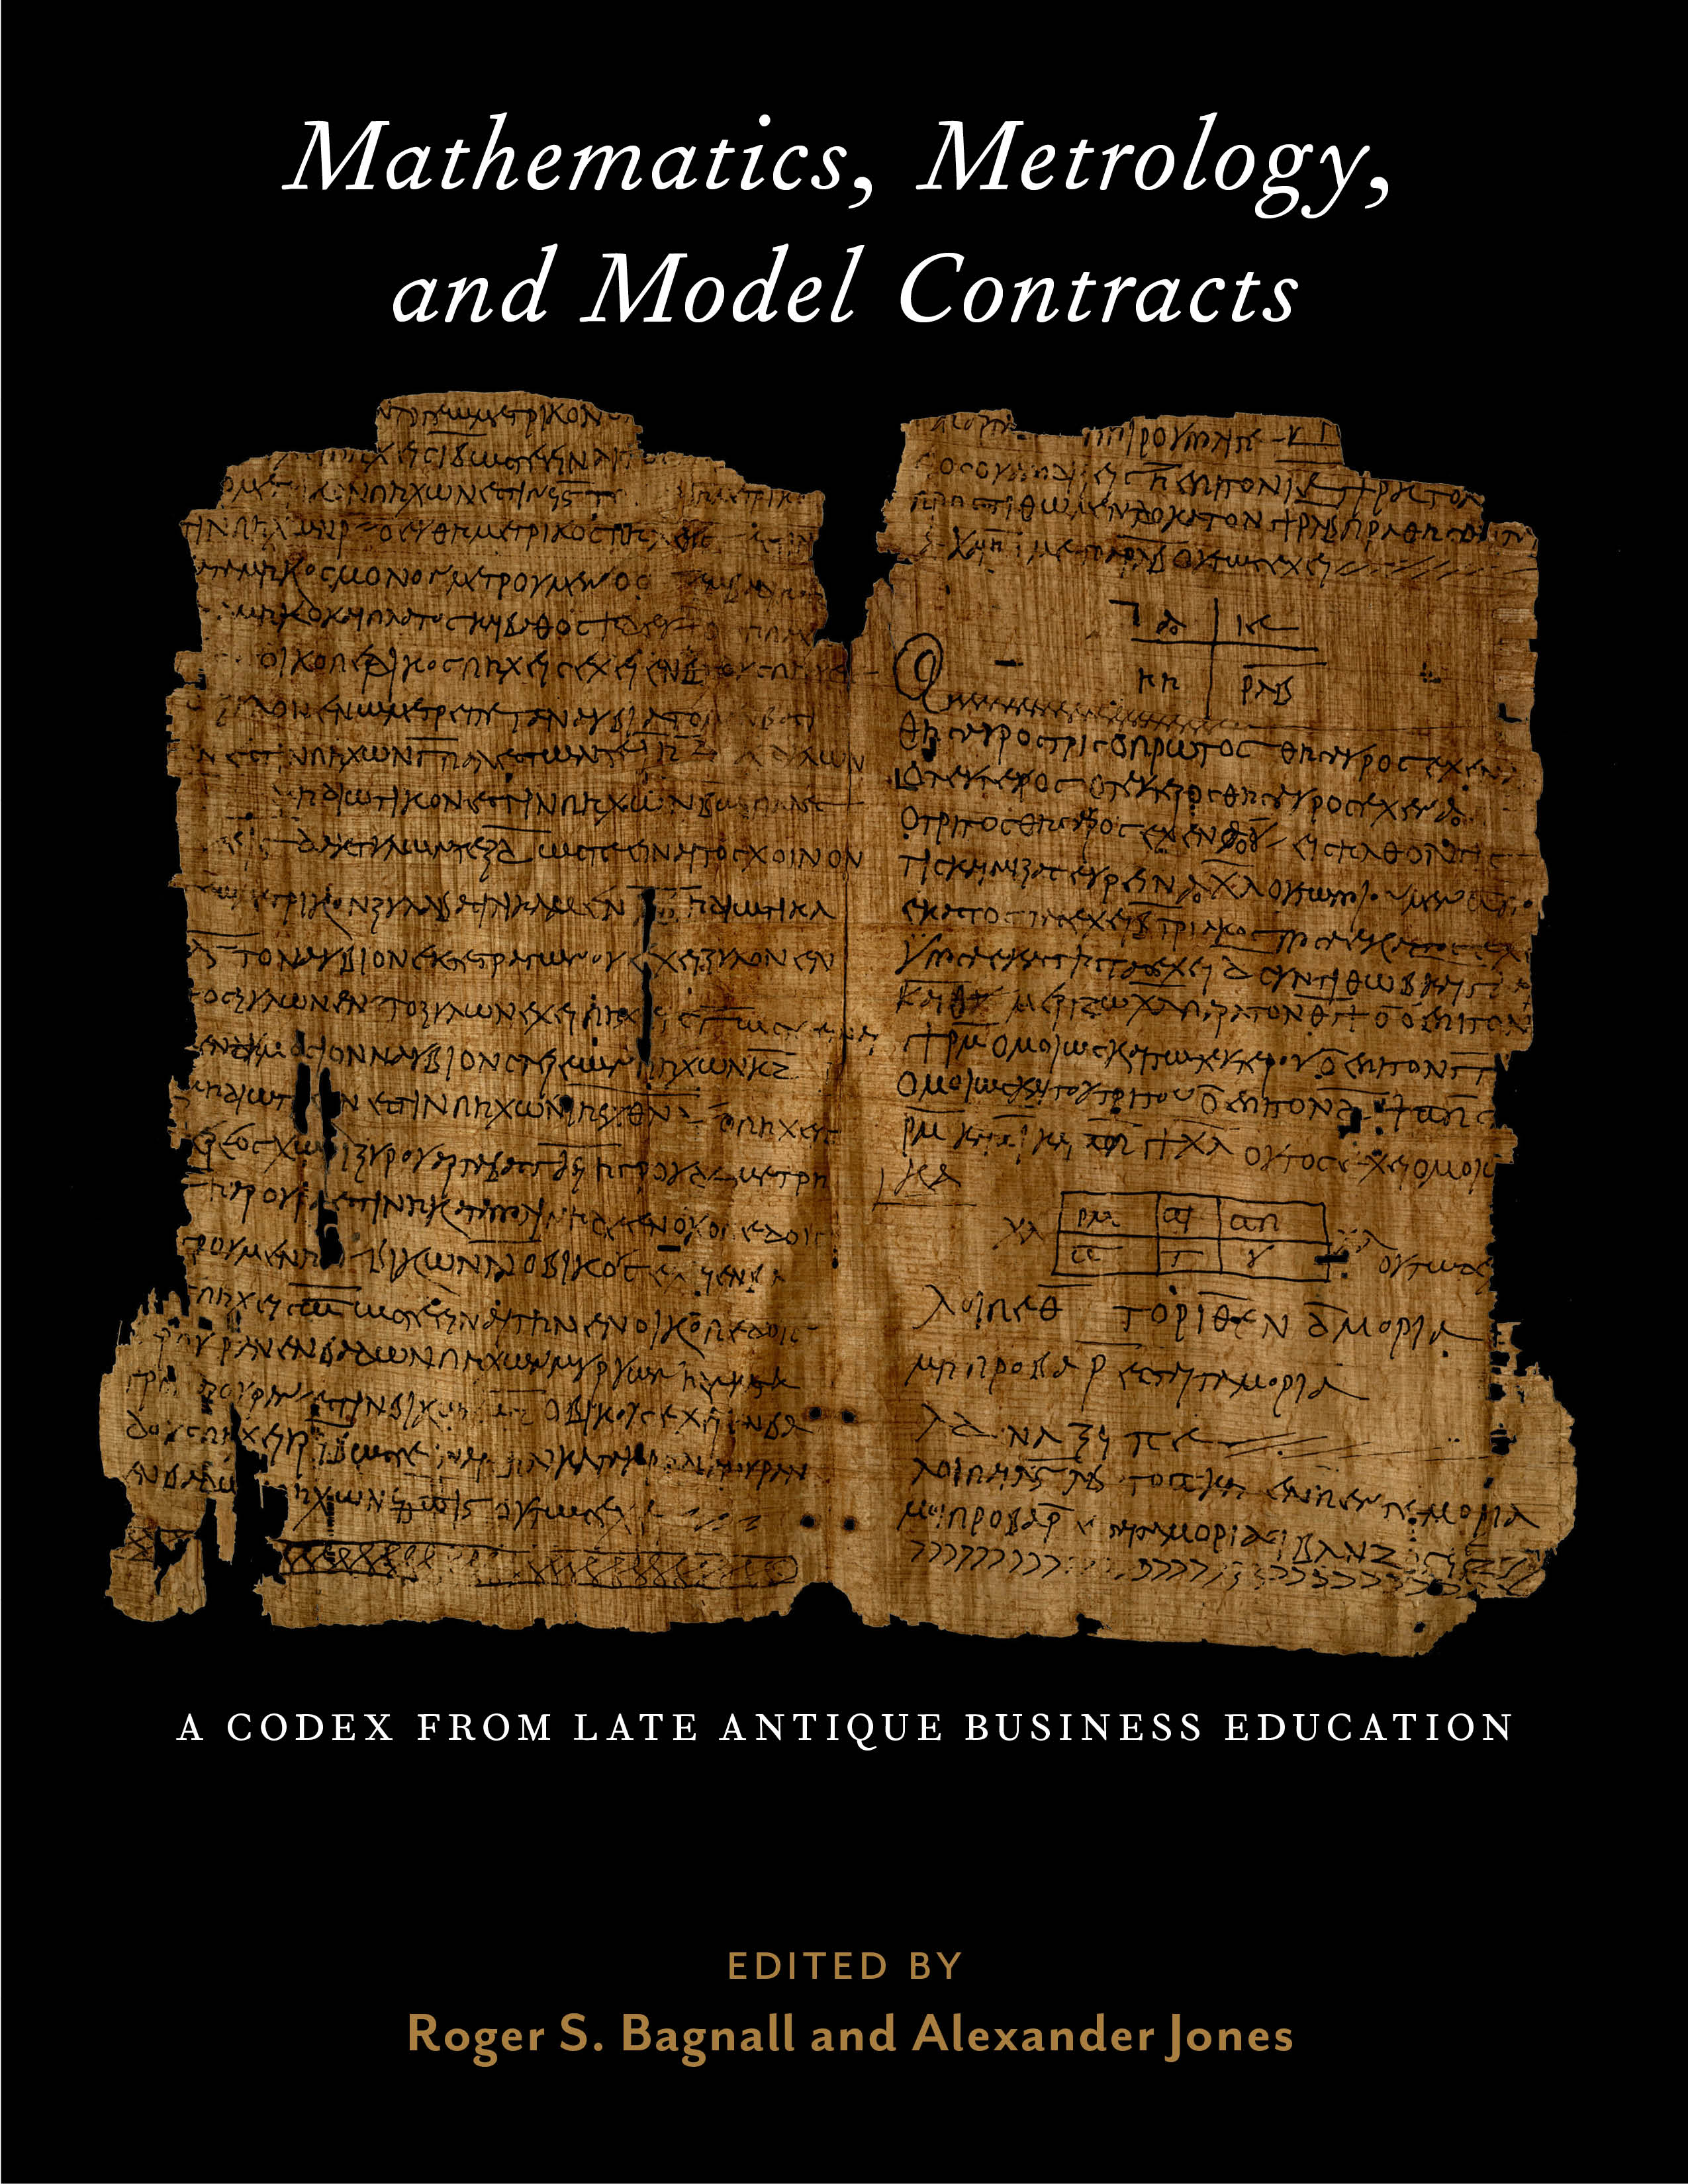 """ISAW Announces Publication of """"Mathematics, Metrology, and Model Contracts"""" by Roger Bagnall and Alexander Jones"""